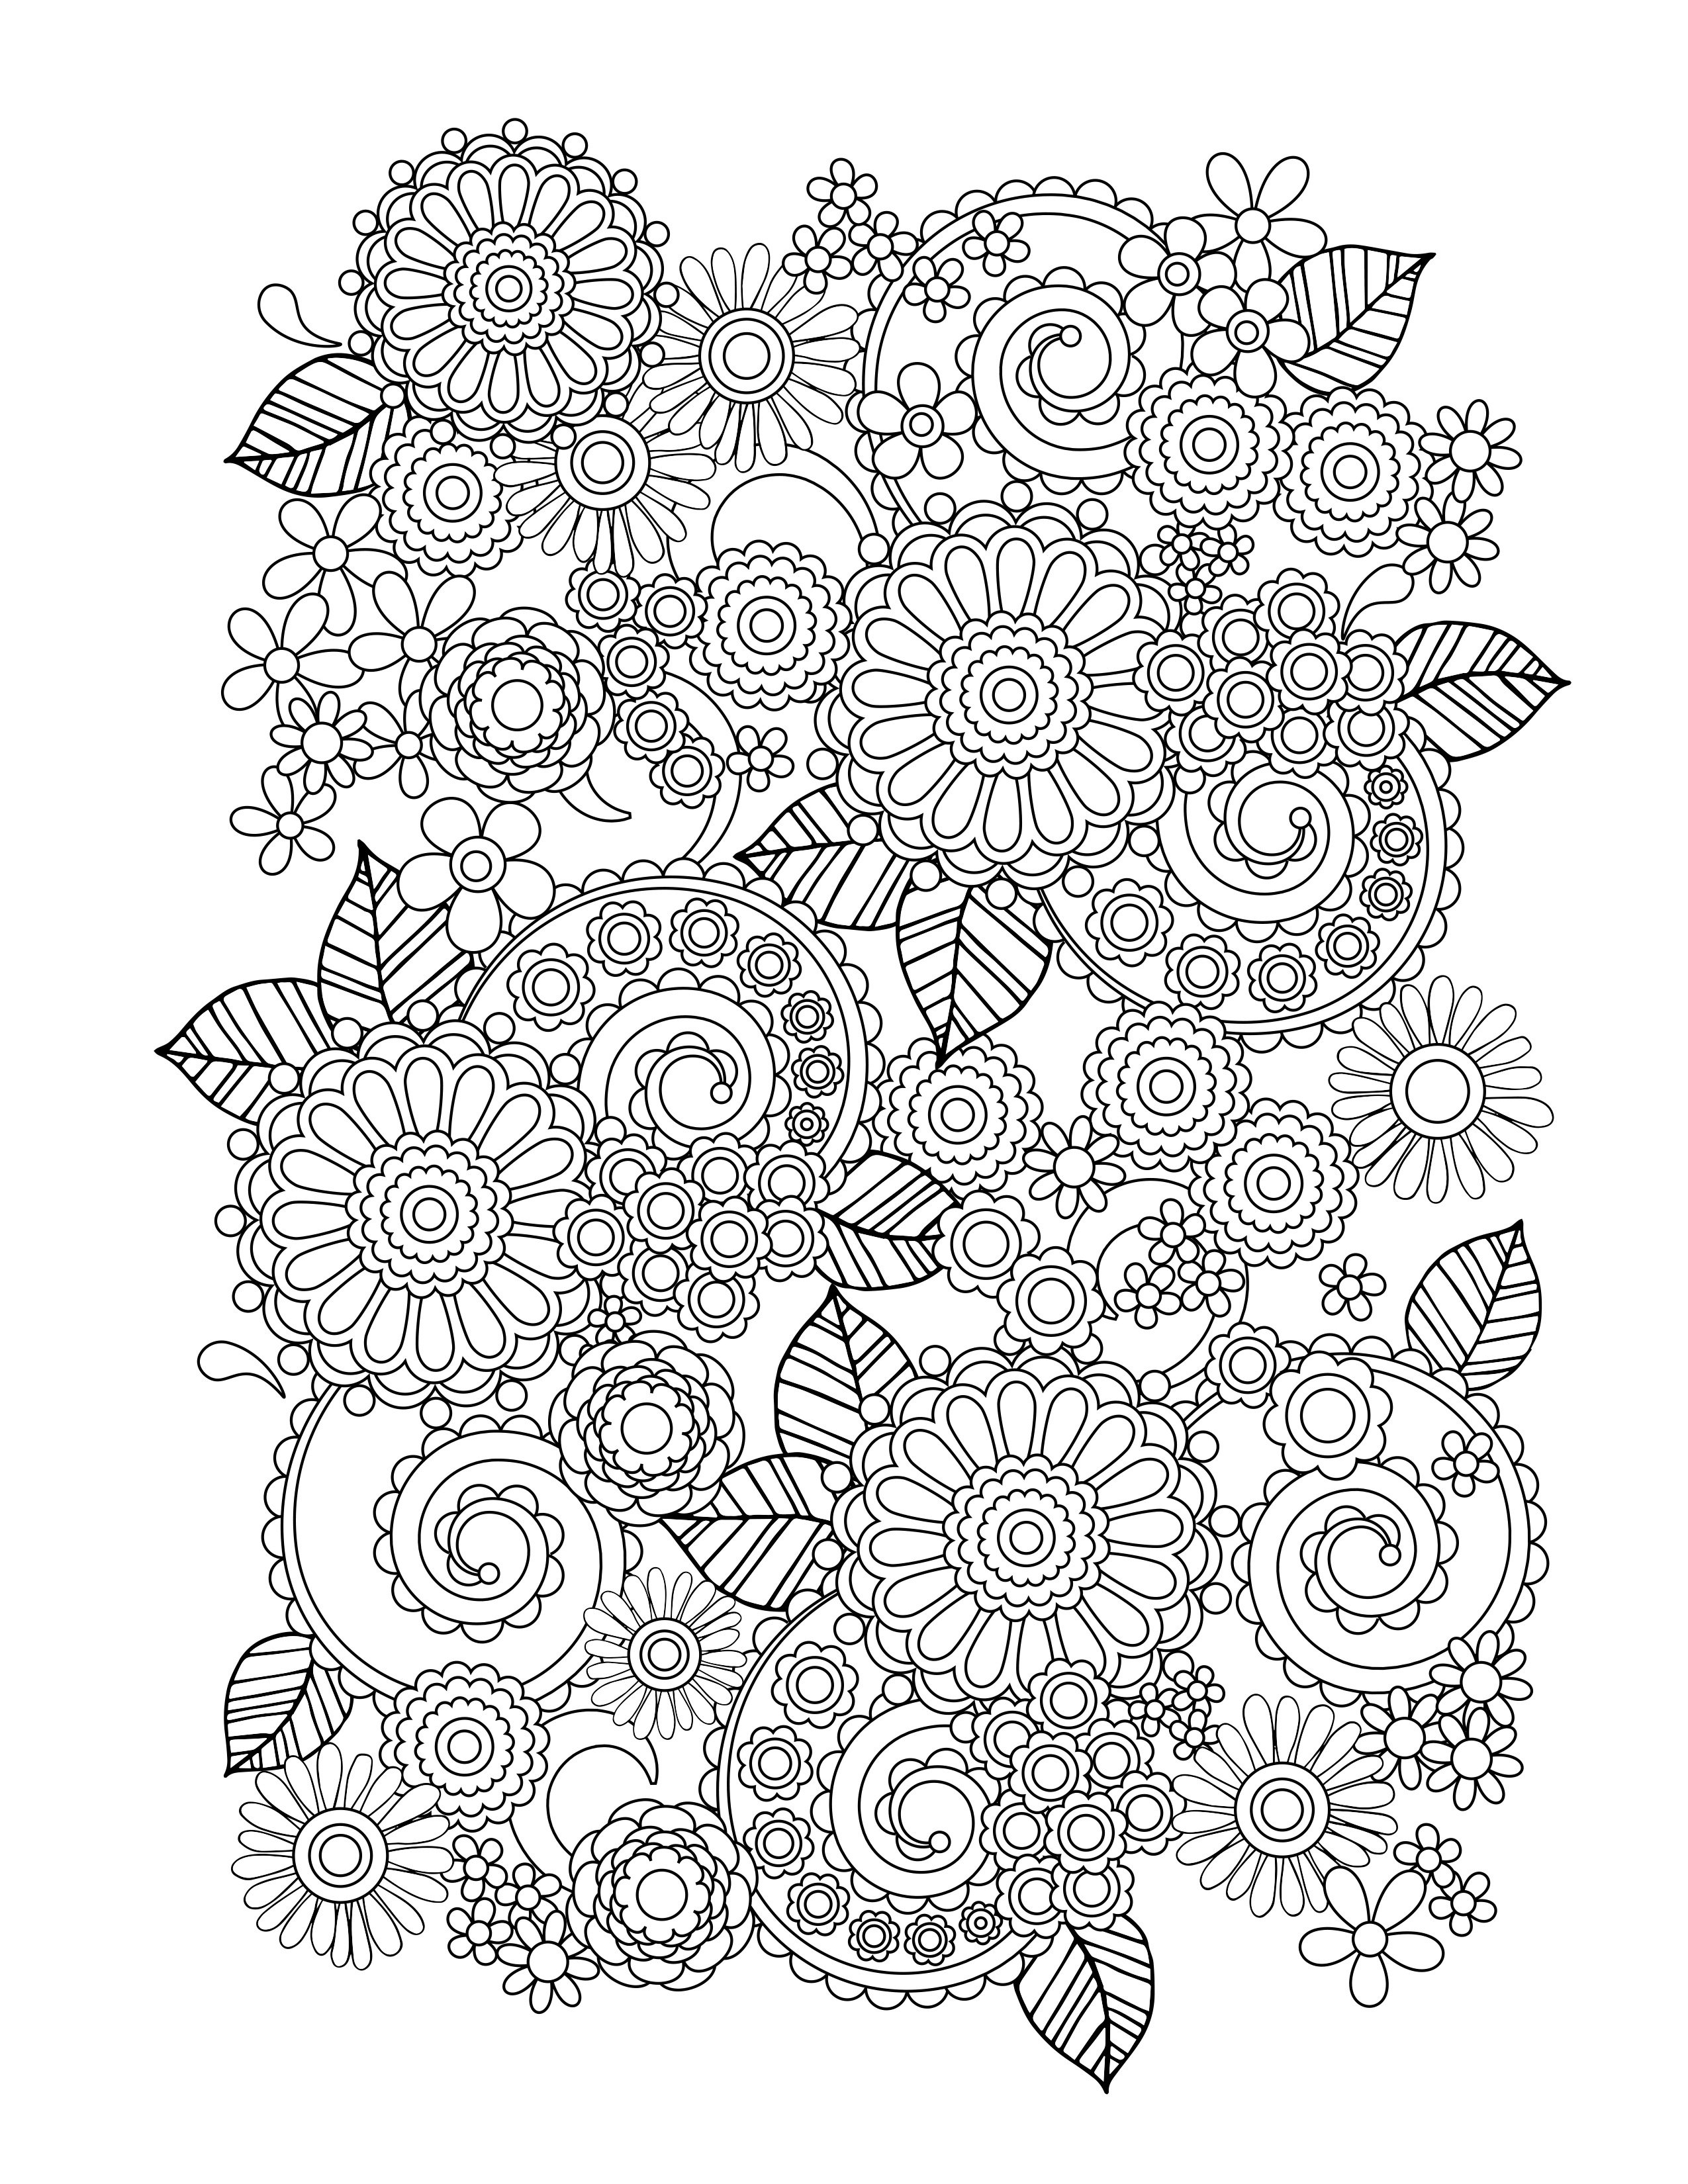 coloring flowers for adults get this realistic flowers coloring pages for adults 7dg40 for flowers adults coloring